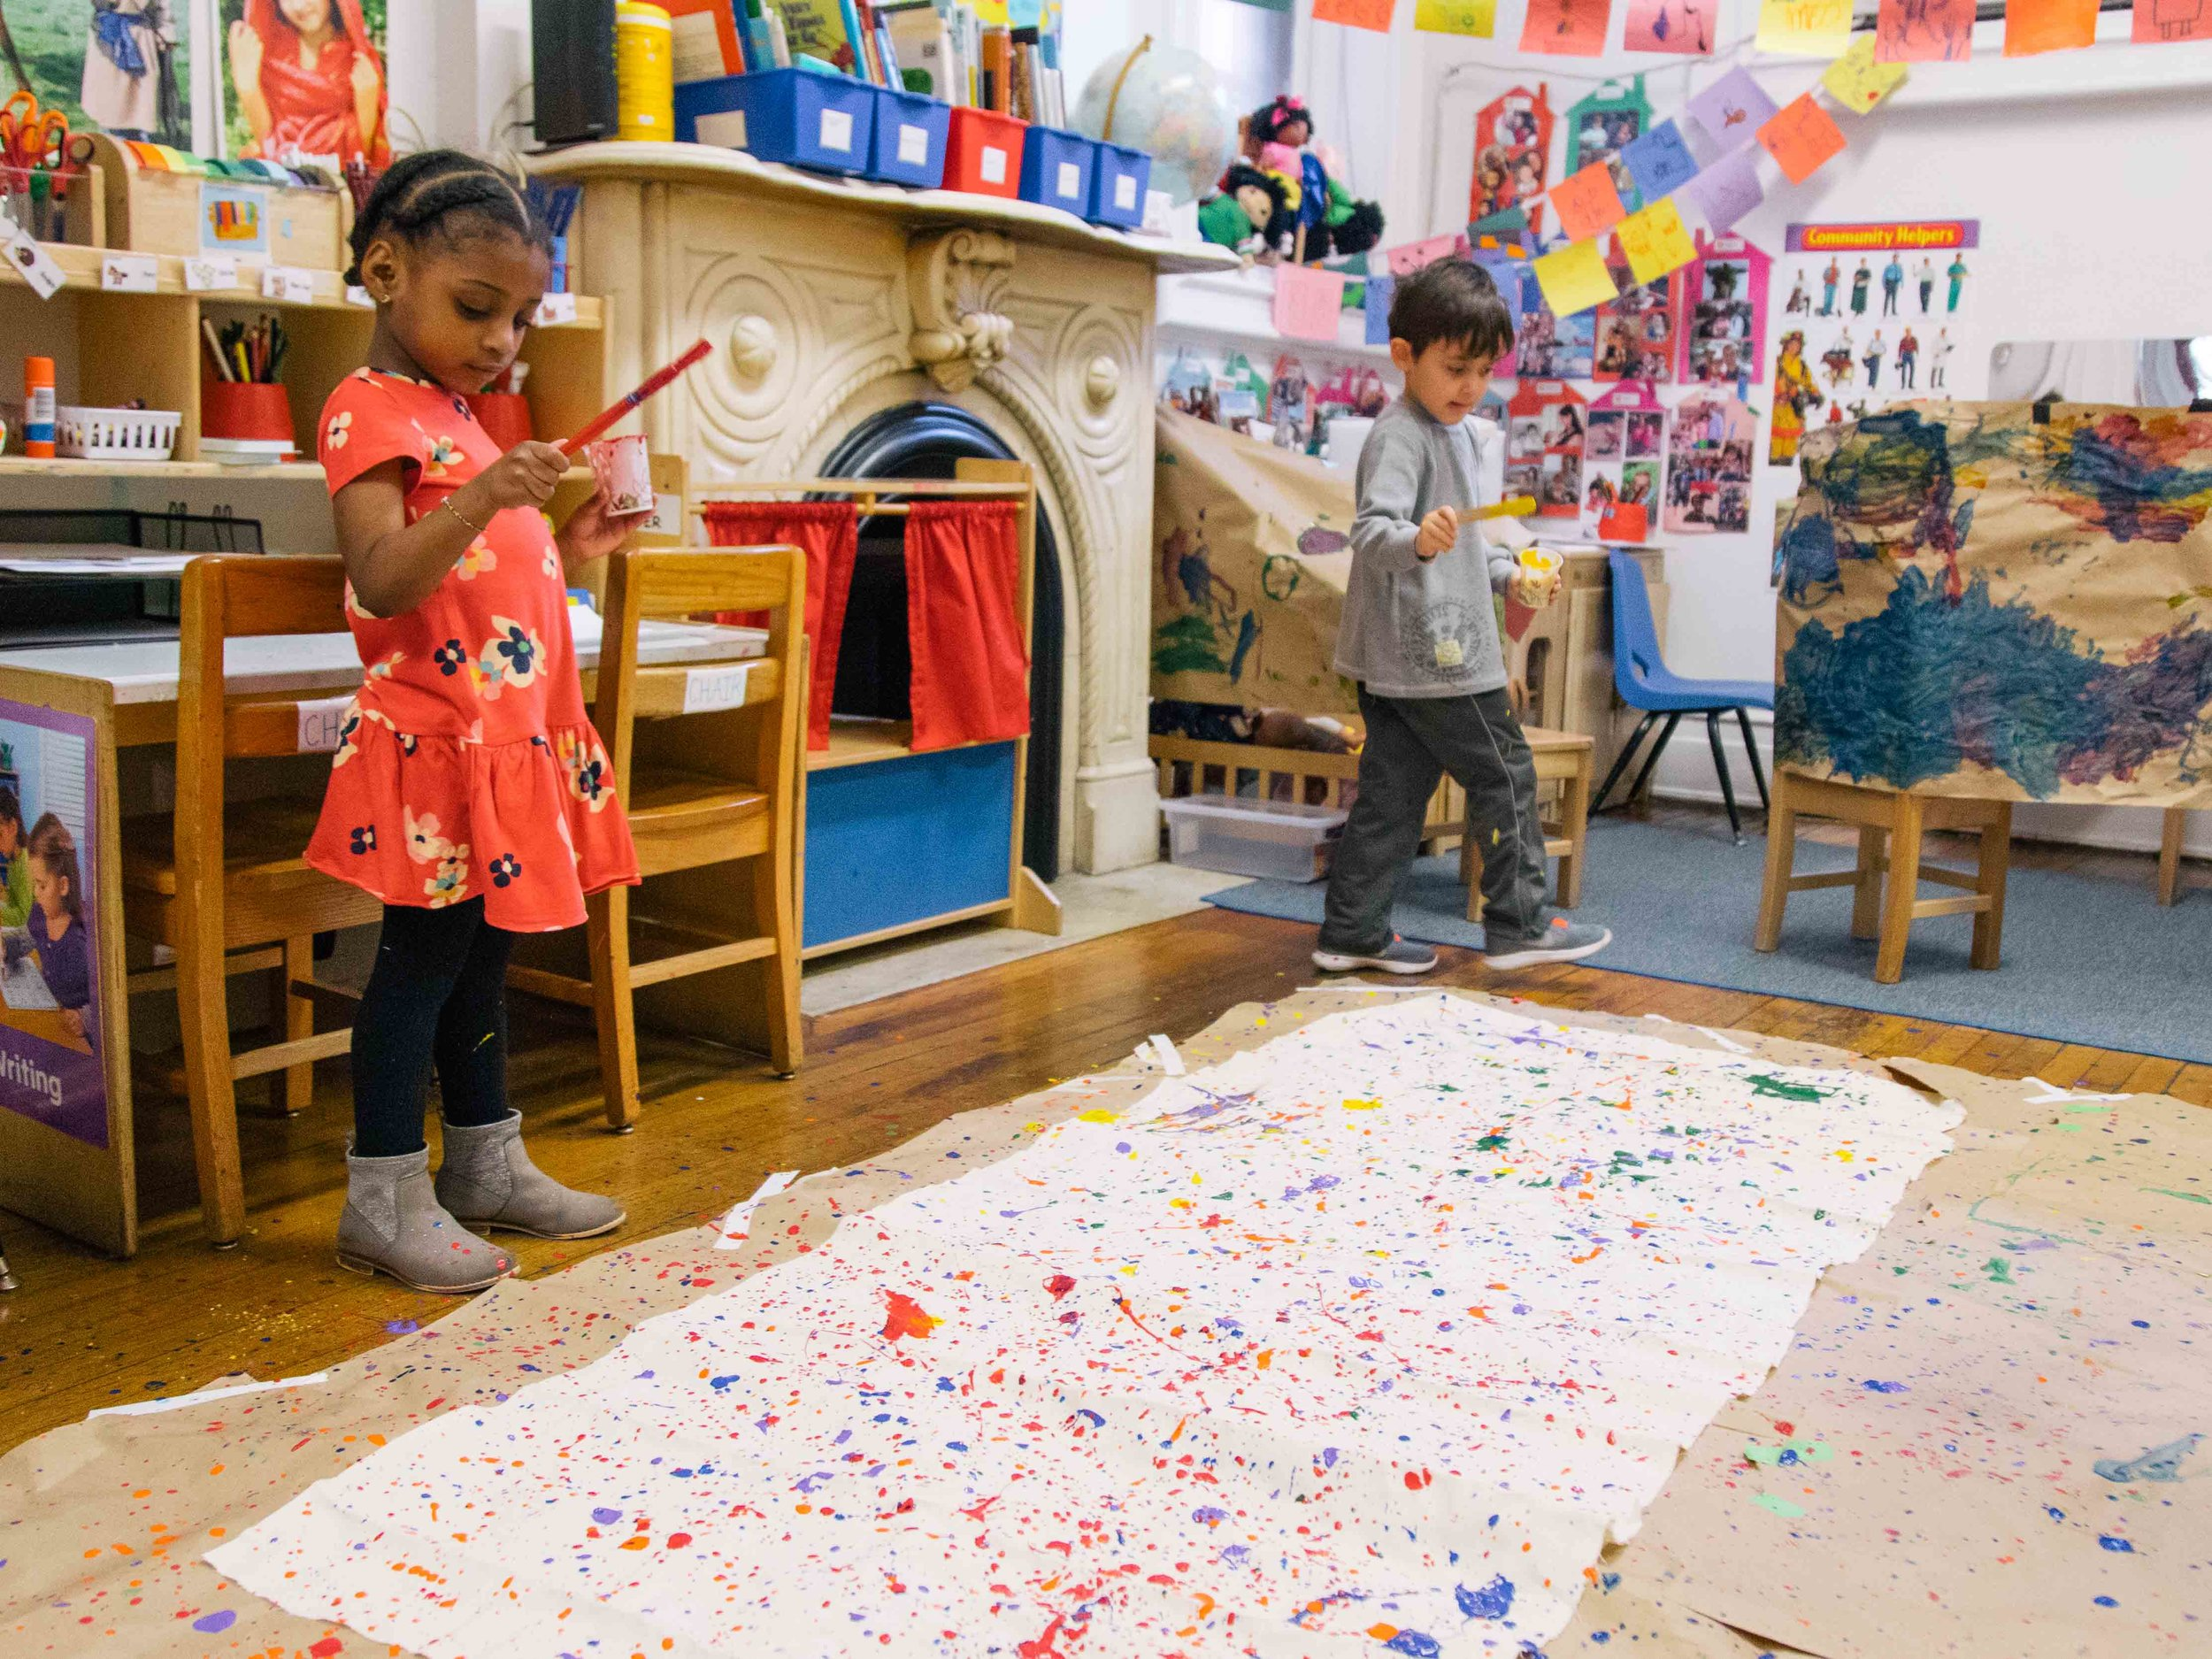 Our Preschool - runs from 8:30 - 2:45 Monday through Friday. We offer full and half day programs, as well as extended day from 7:30am - 6pm. Our first priority is to build a warm, supportive classroom community in which each child is a valued member.